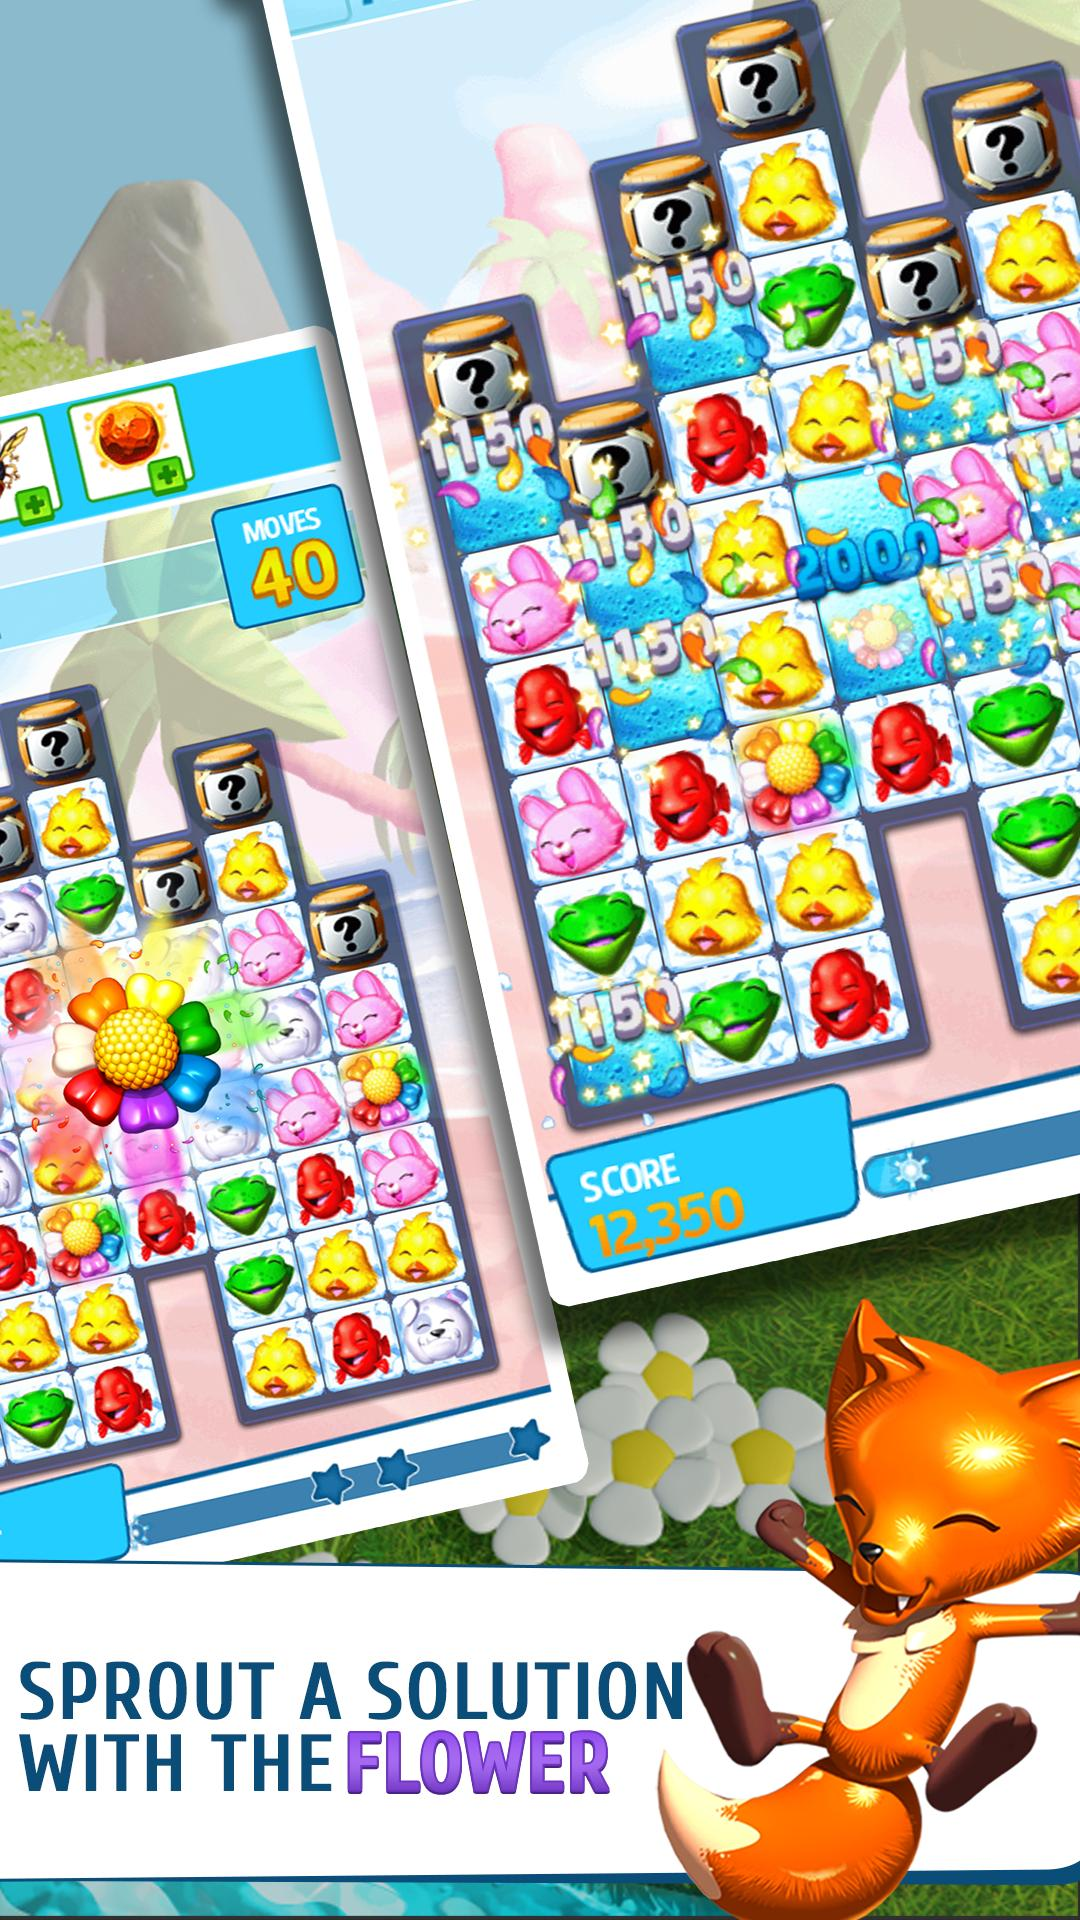 [Game Android] Puzzle Pets - Popping Fun Tiếng Việt